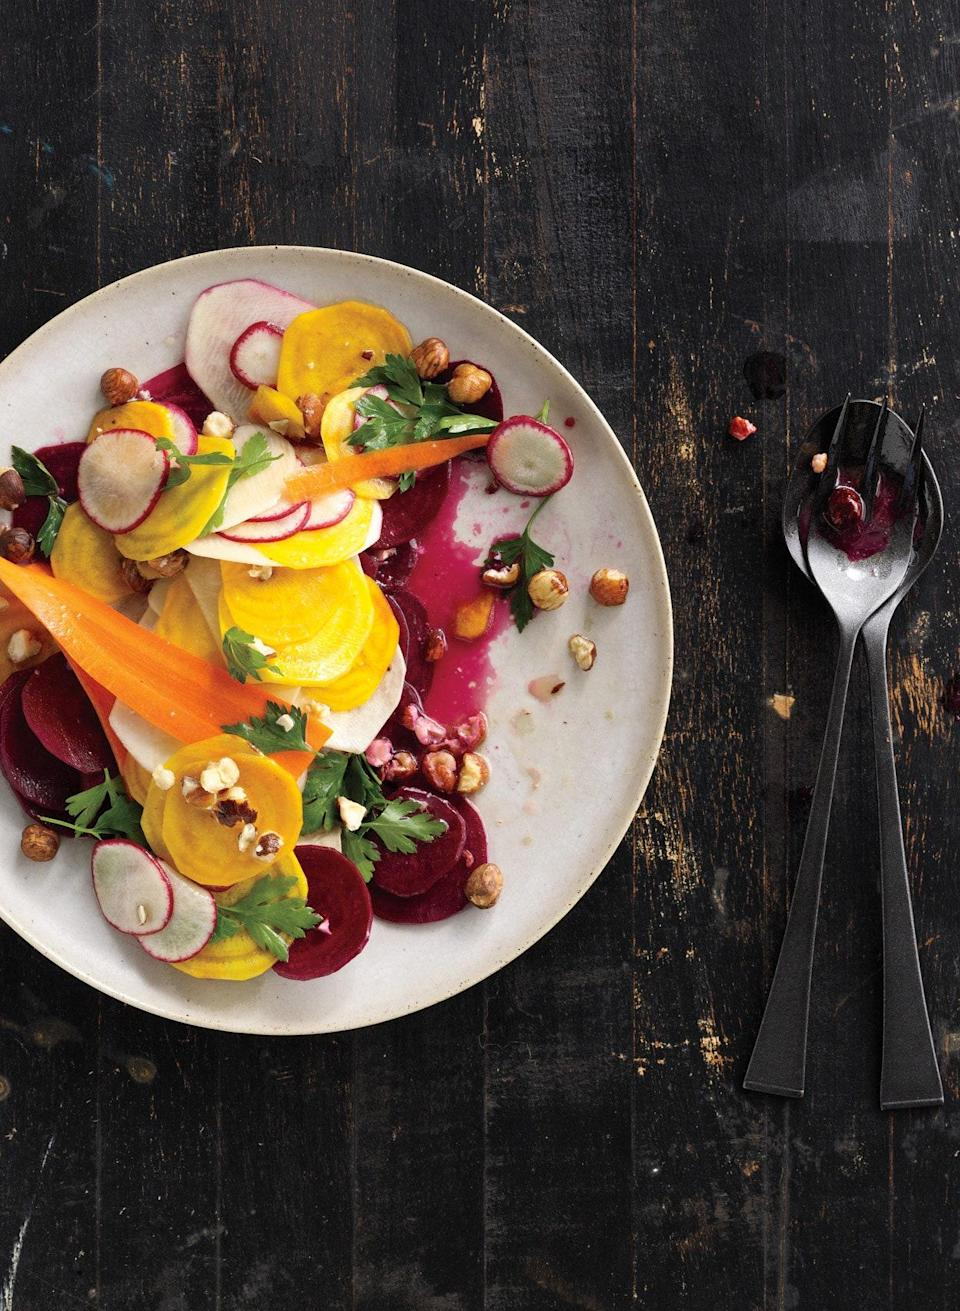 """And mix of root vegetables will work wonderfully in this hazelnut vinaigrette–dressed salad. <a href=""""https://www.epicurious.com/recipes/food/views/shaved-root-vegetable-salad-368266?mbid=synd_yahoo_rss"""" rel=""""nofollow noopener"""" target=""""_blank"""" data-ylk=""""slk:See recipe."""" class=""""link rapid-noclick-resp"""">See recipe.</a>"""